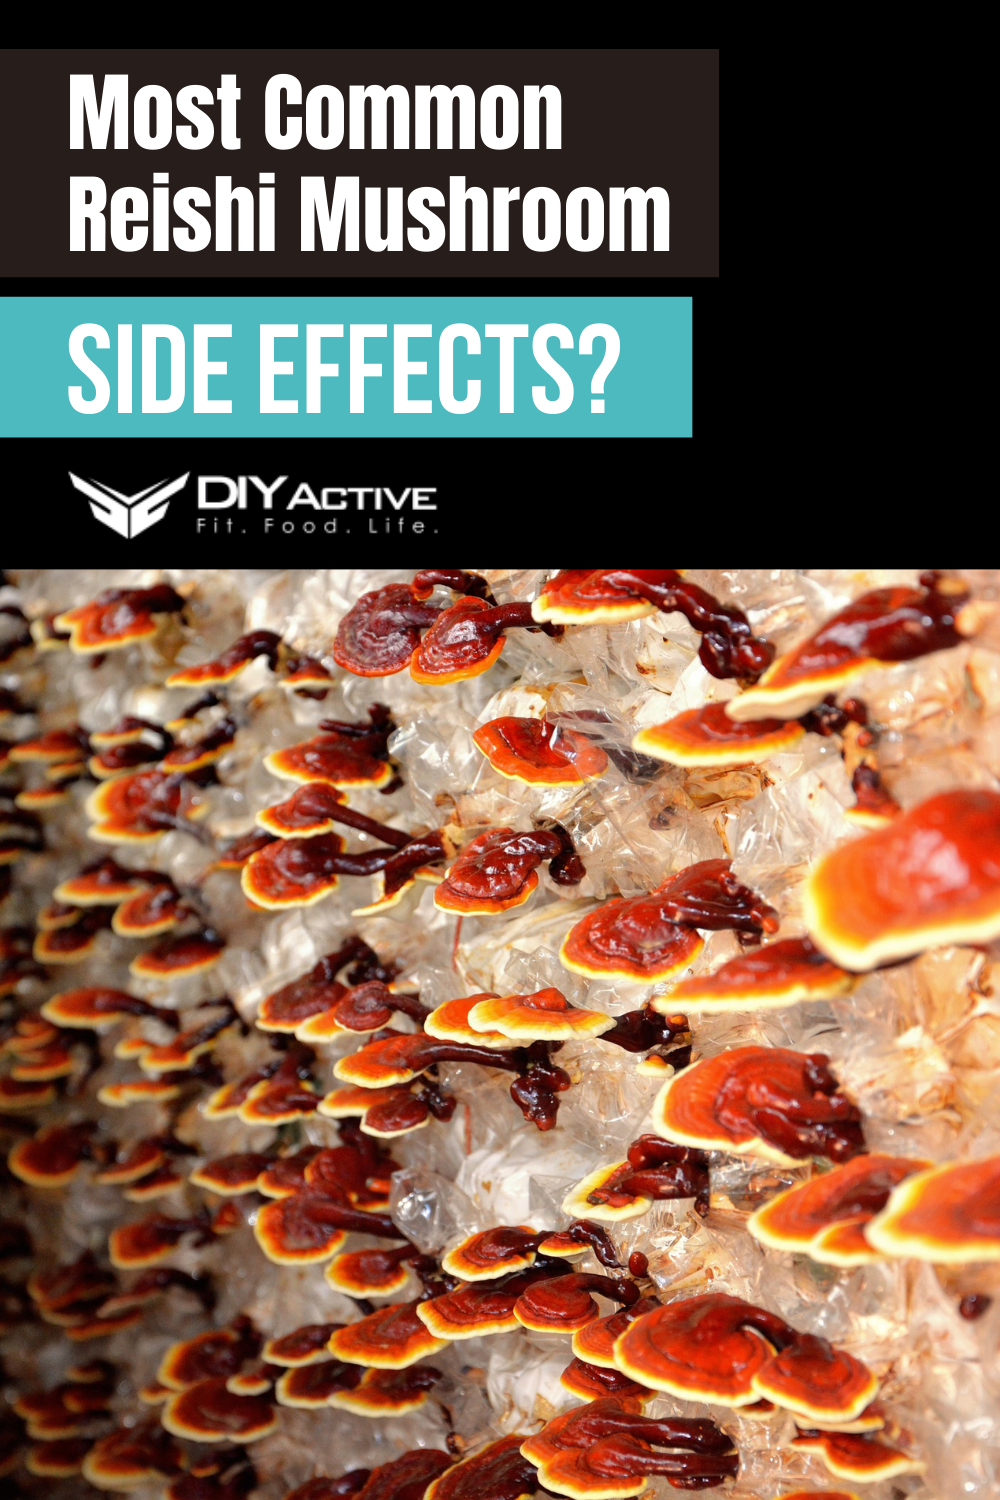 What Are the Most Common Reishi Mushroom Side Effects?